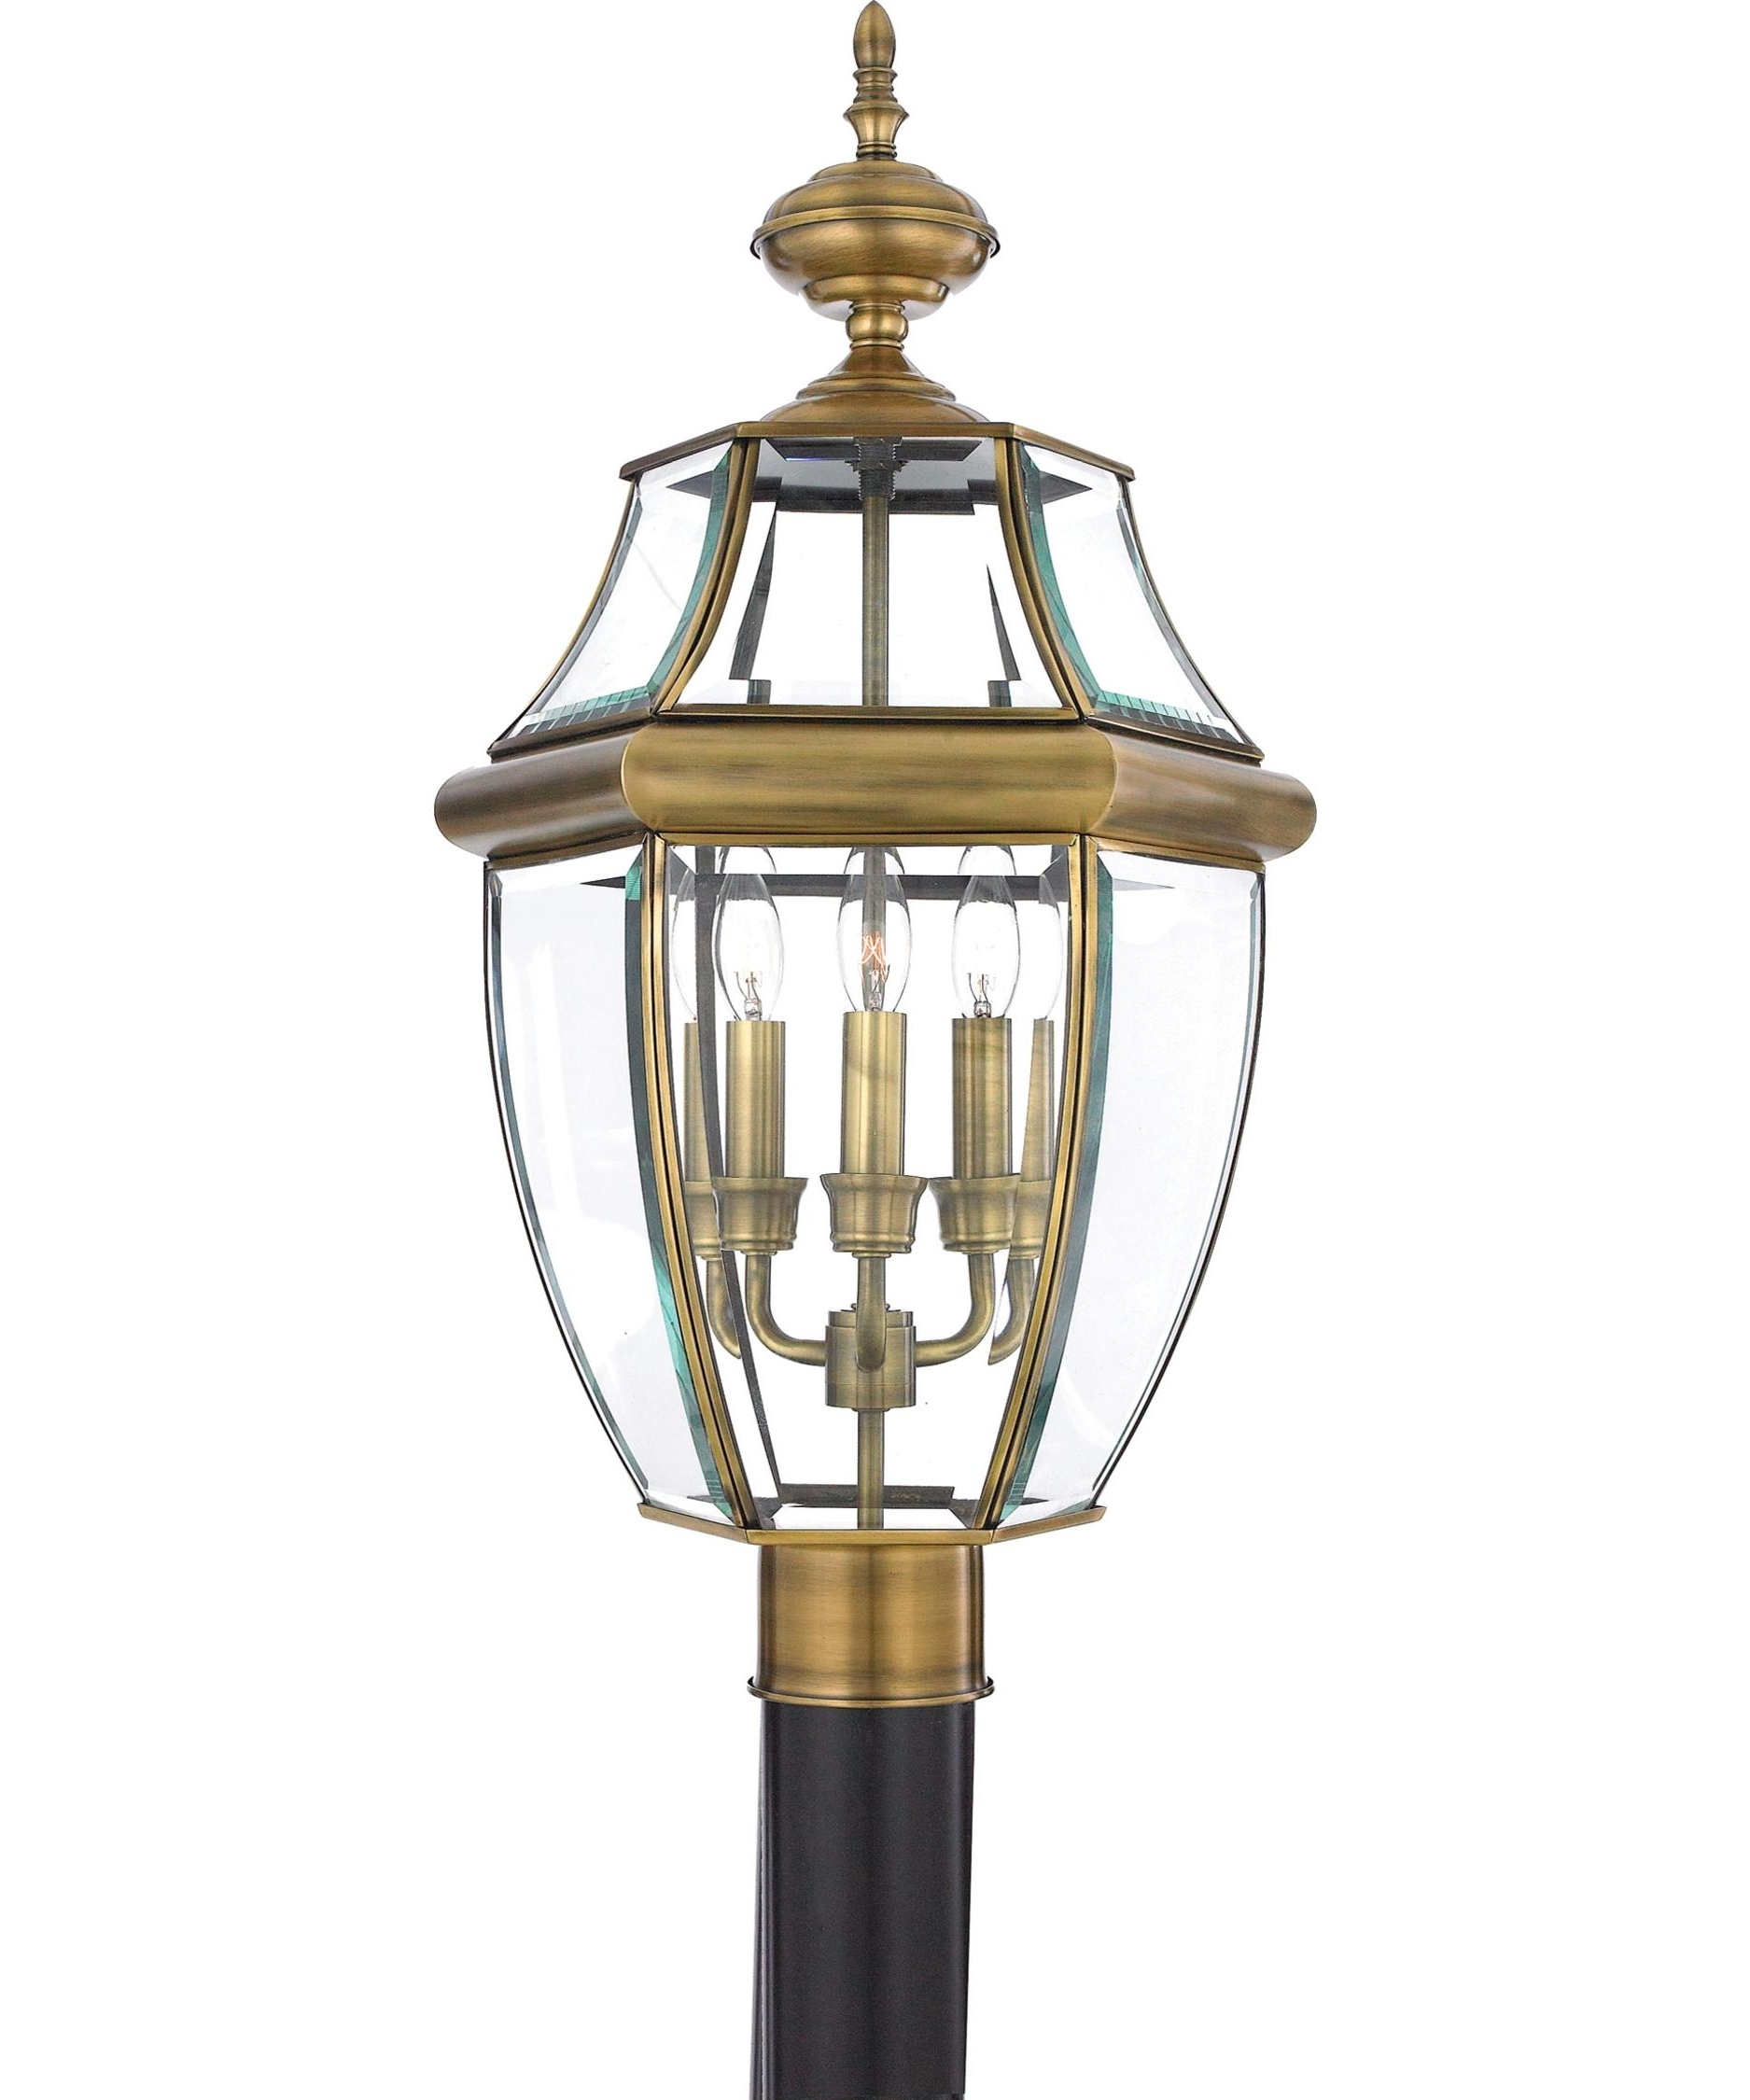 Most Up To Date Quoizel Ny9043 Newbury 12 Inch Wide 3 Light Outdoor Post Lamp For Quoizel Outdoor Lanterns (View 7 of 20)